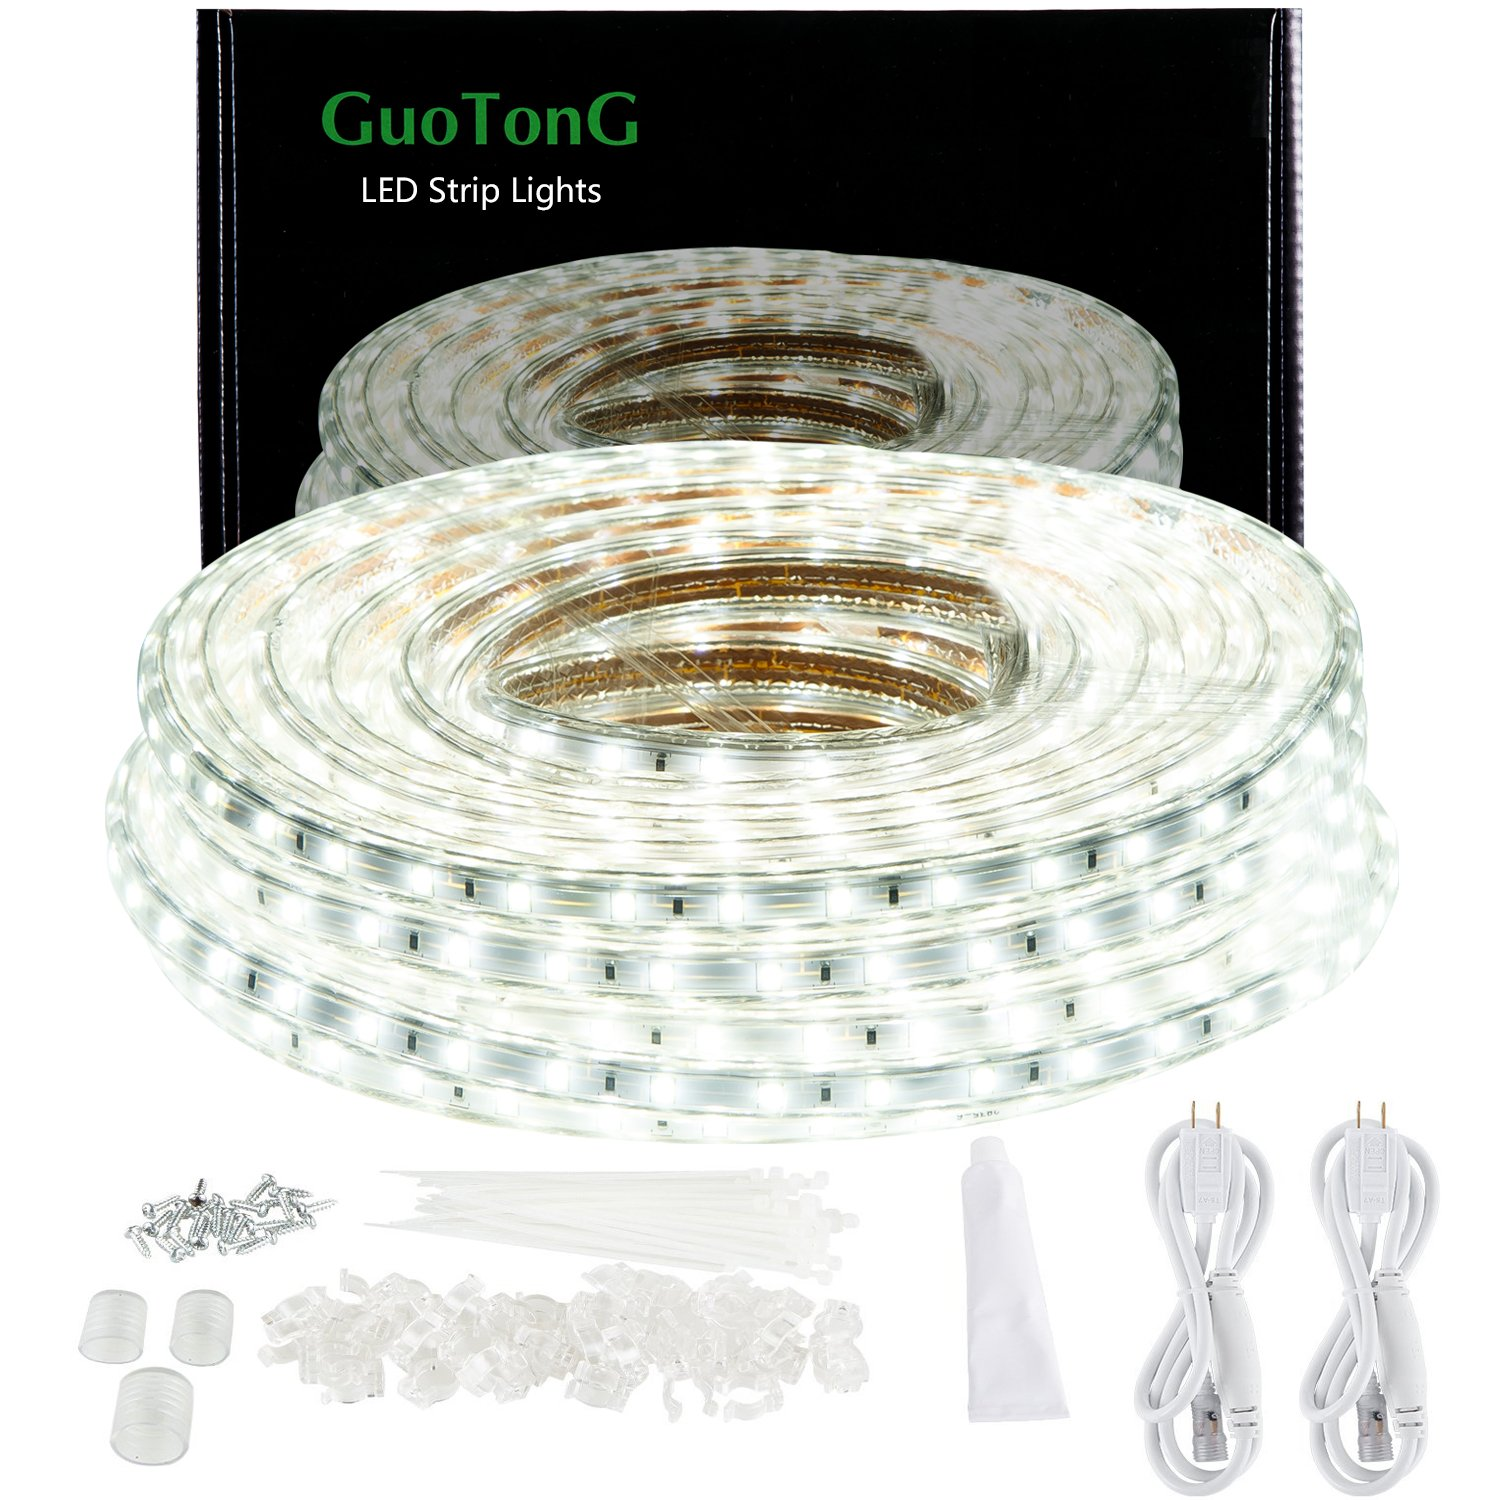 GuoTonG 50ft/15m LED Light Strip kit,Waterproof, 6000K Daylight White,110V 2 Wire, Flexible, 900 Units SMD 2835 LEDS,UL Listed Power Supply,Indoor/Outdoor Use, Ideal for Backyards, Decorative Lighting